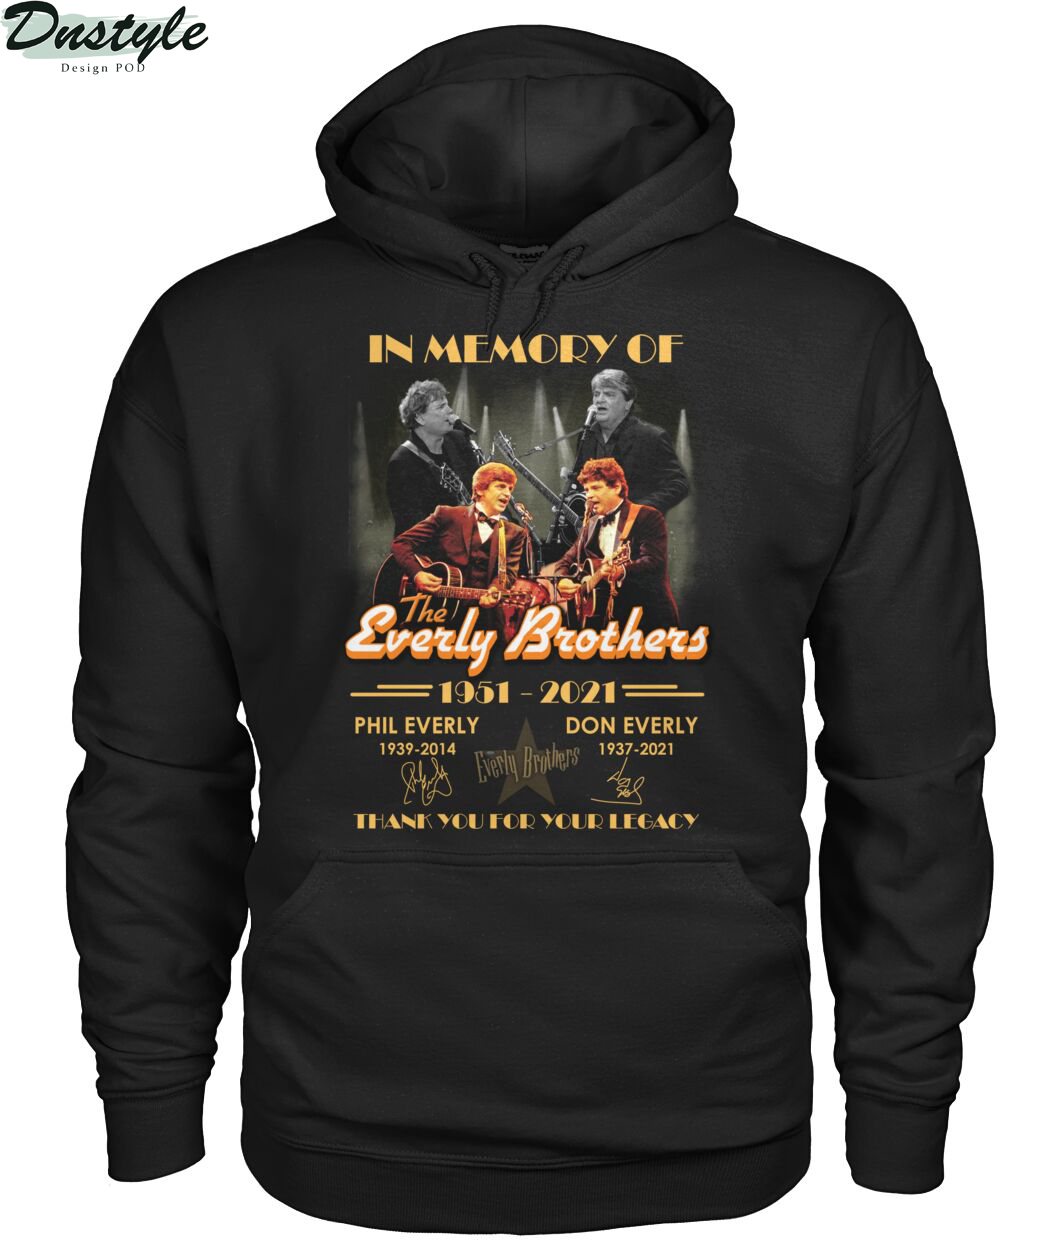 In memory of the everly brothers thank you for your legacy hoodie